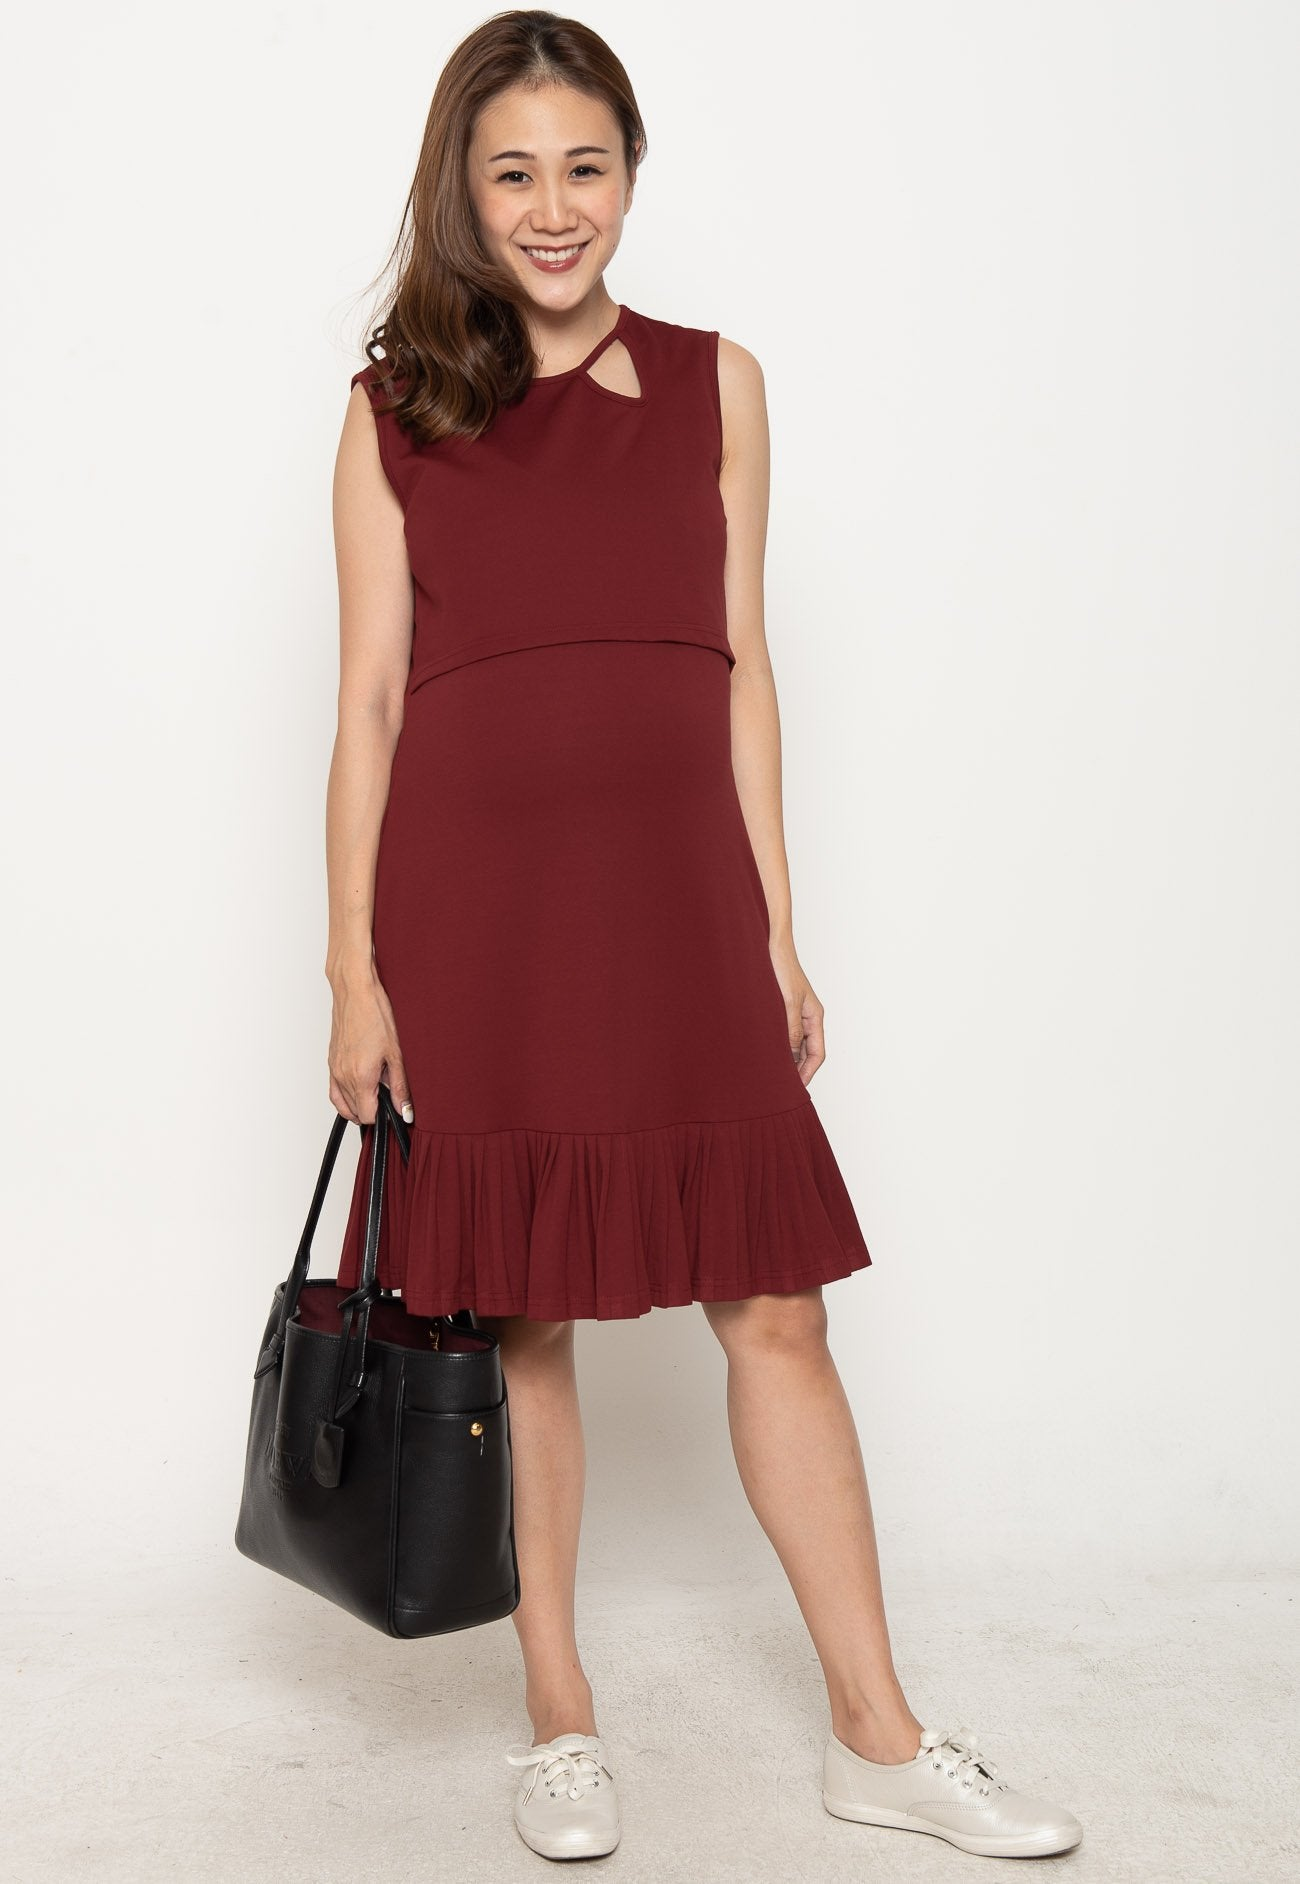 Mothercot Peni Pleated Nursing Dress in Red  by JumpEatCry - Maternity and nursing wear